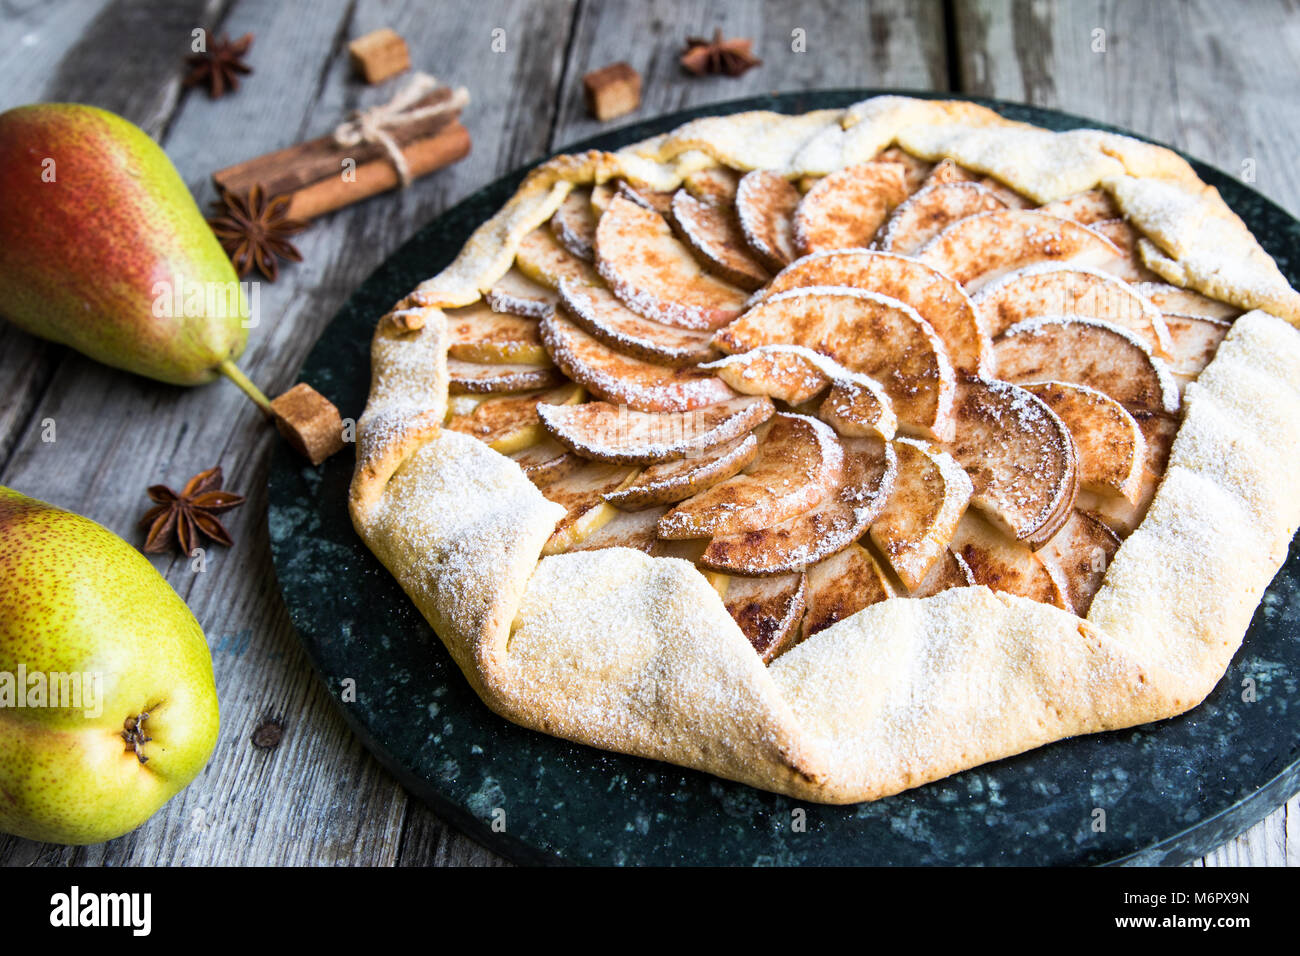 Pie with apples, pears and cinnamon on an old wooden background. Apple tart - Stock Image